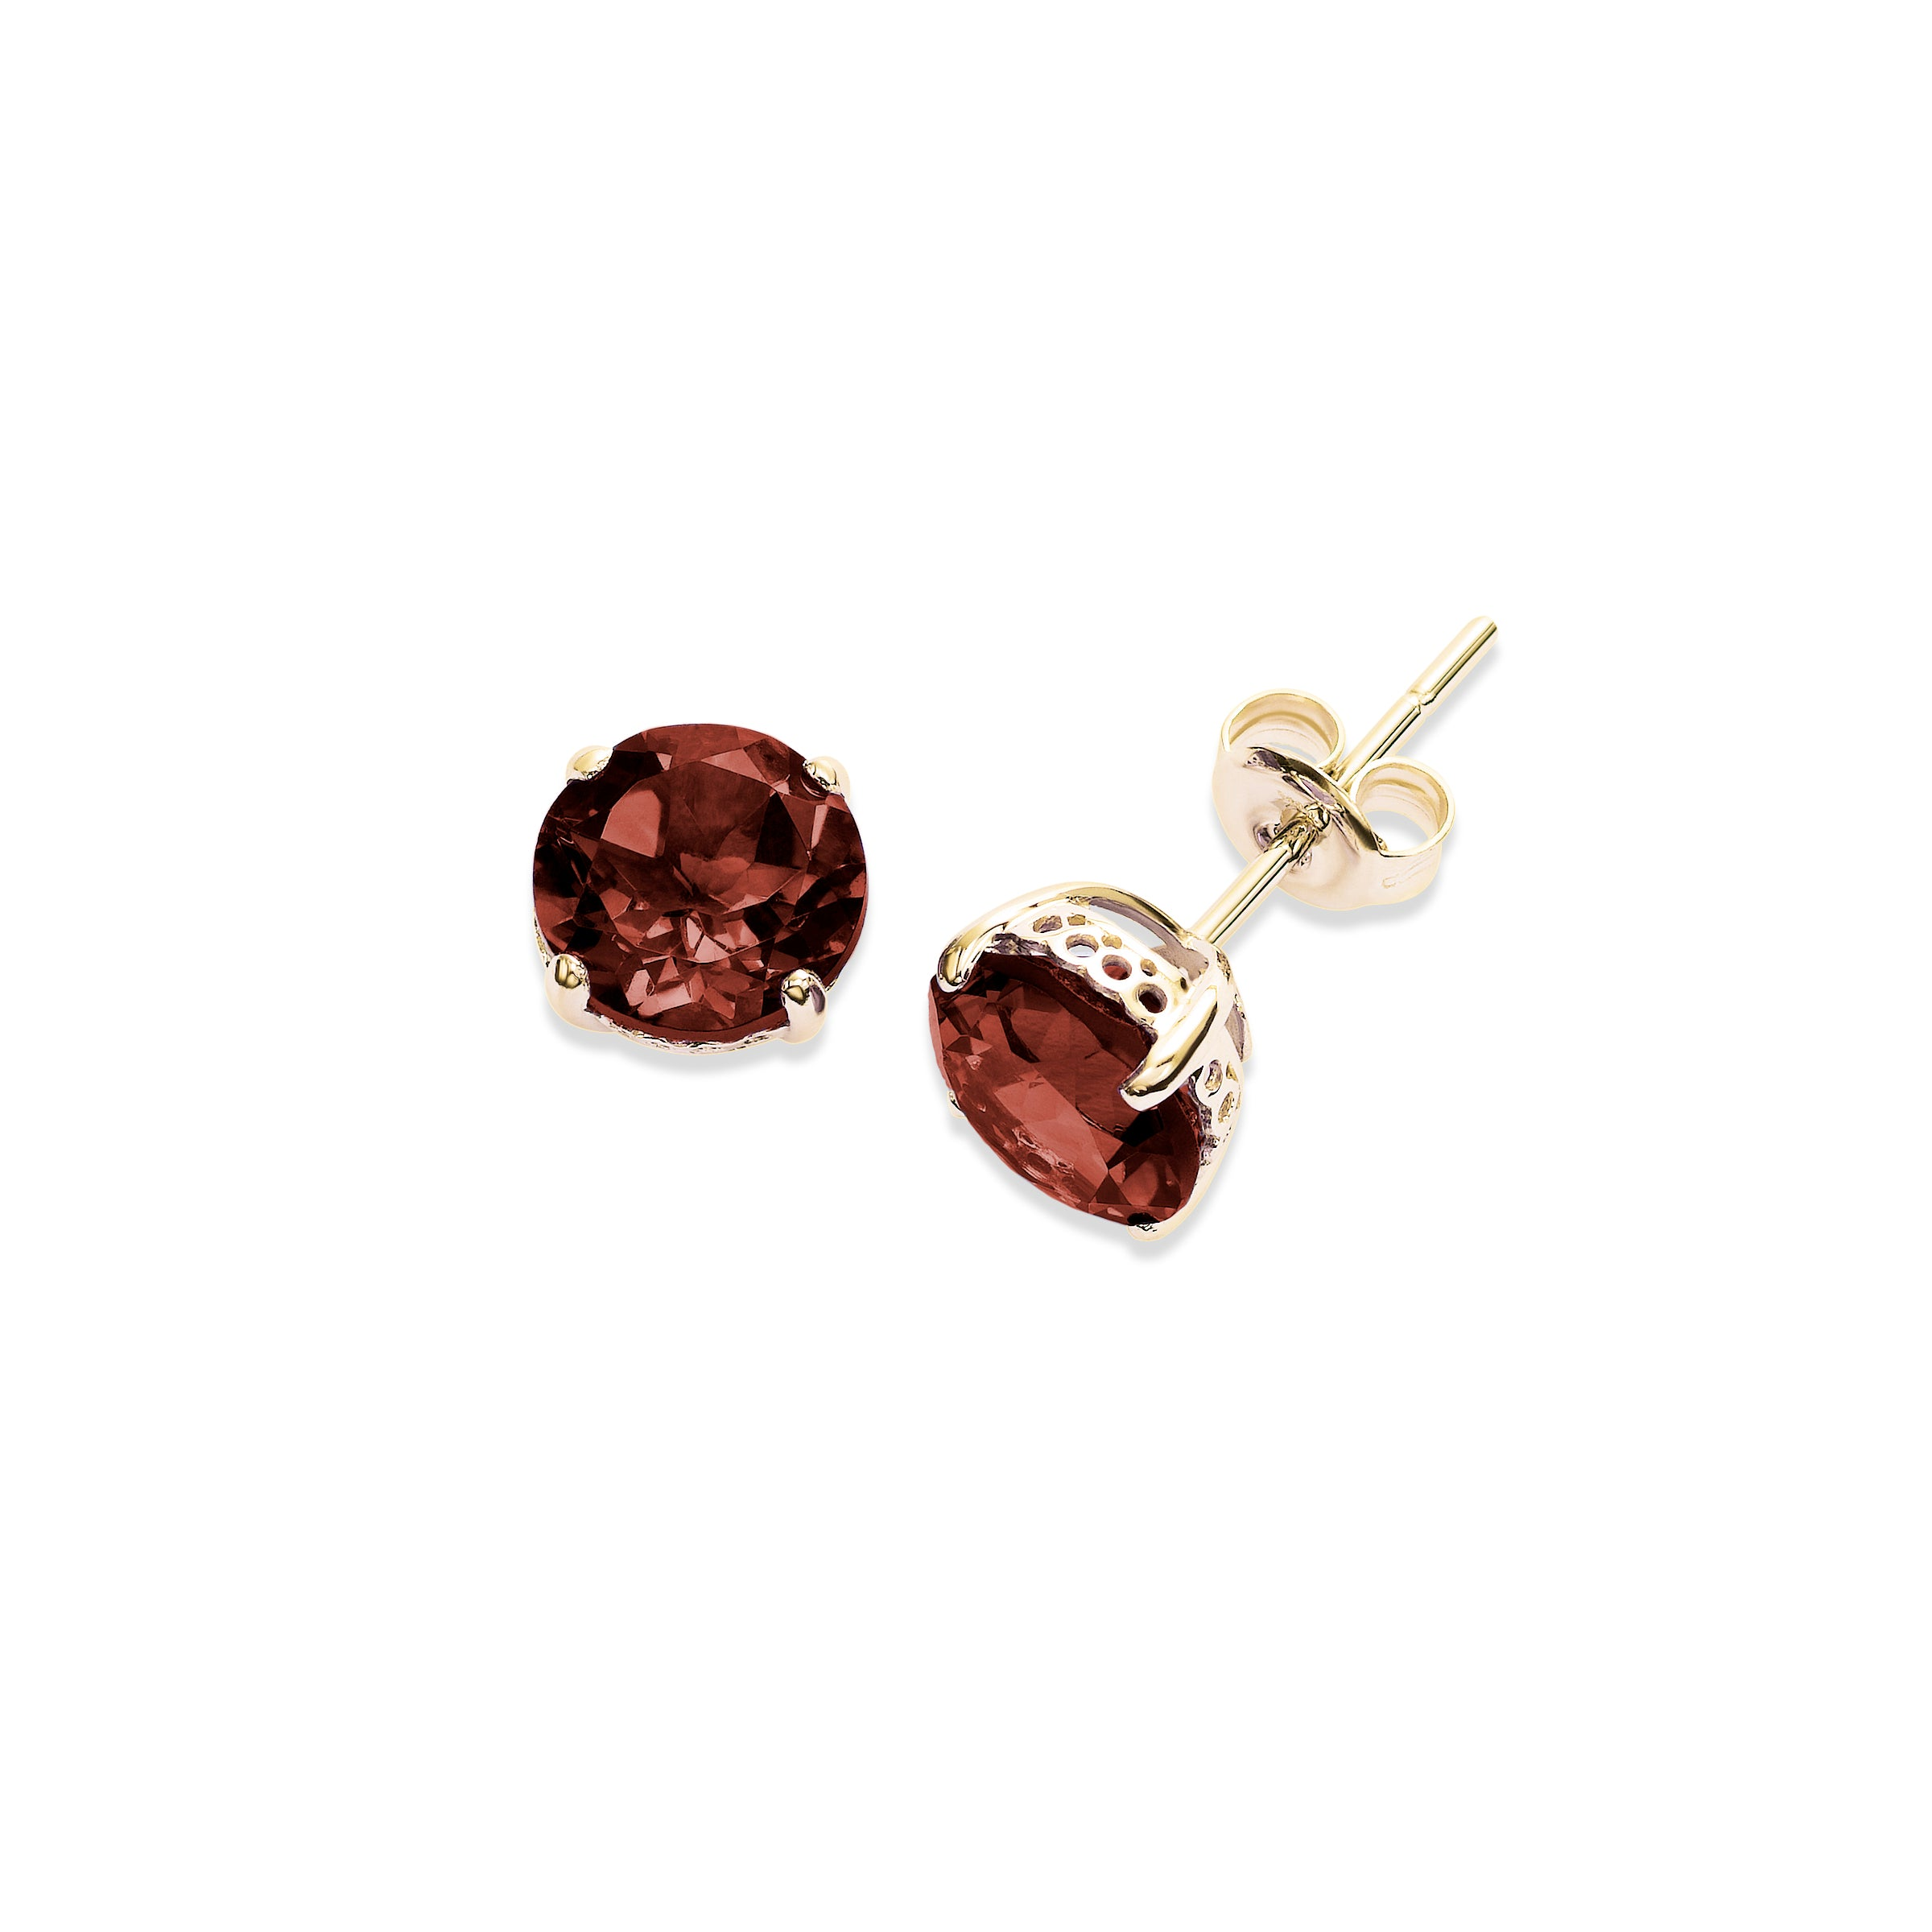 Round Garnet 8MM Stud Earrings, 14K Yellow Gold